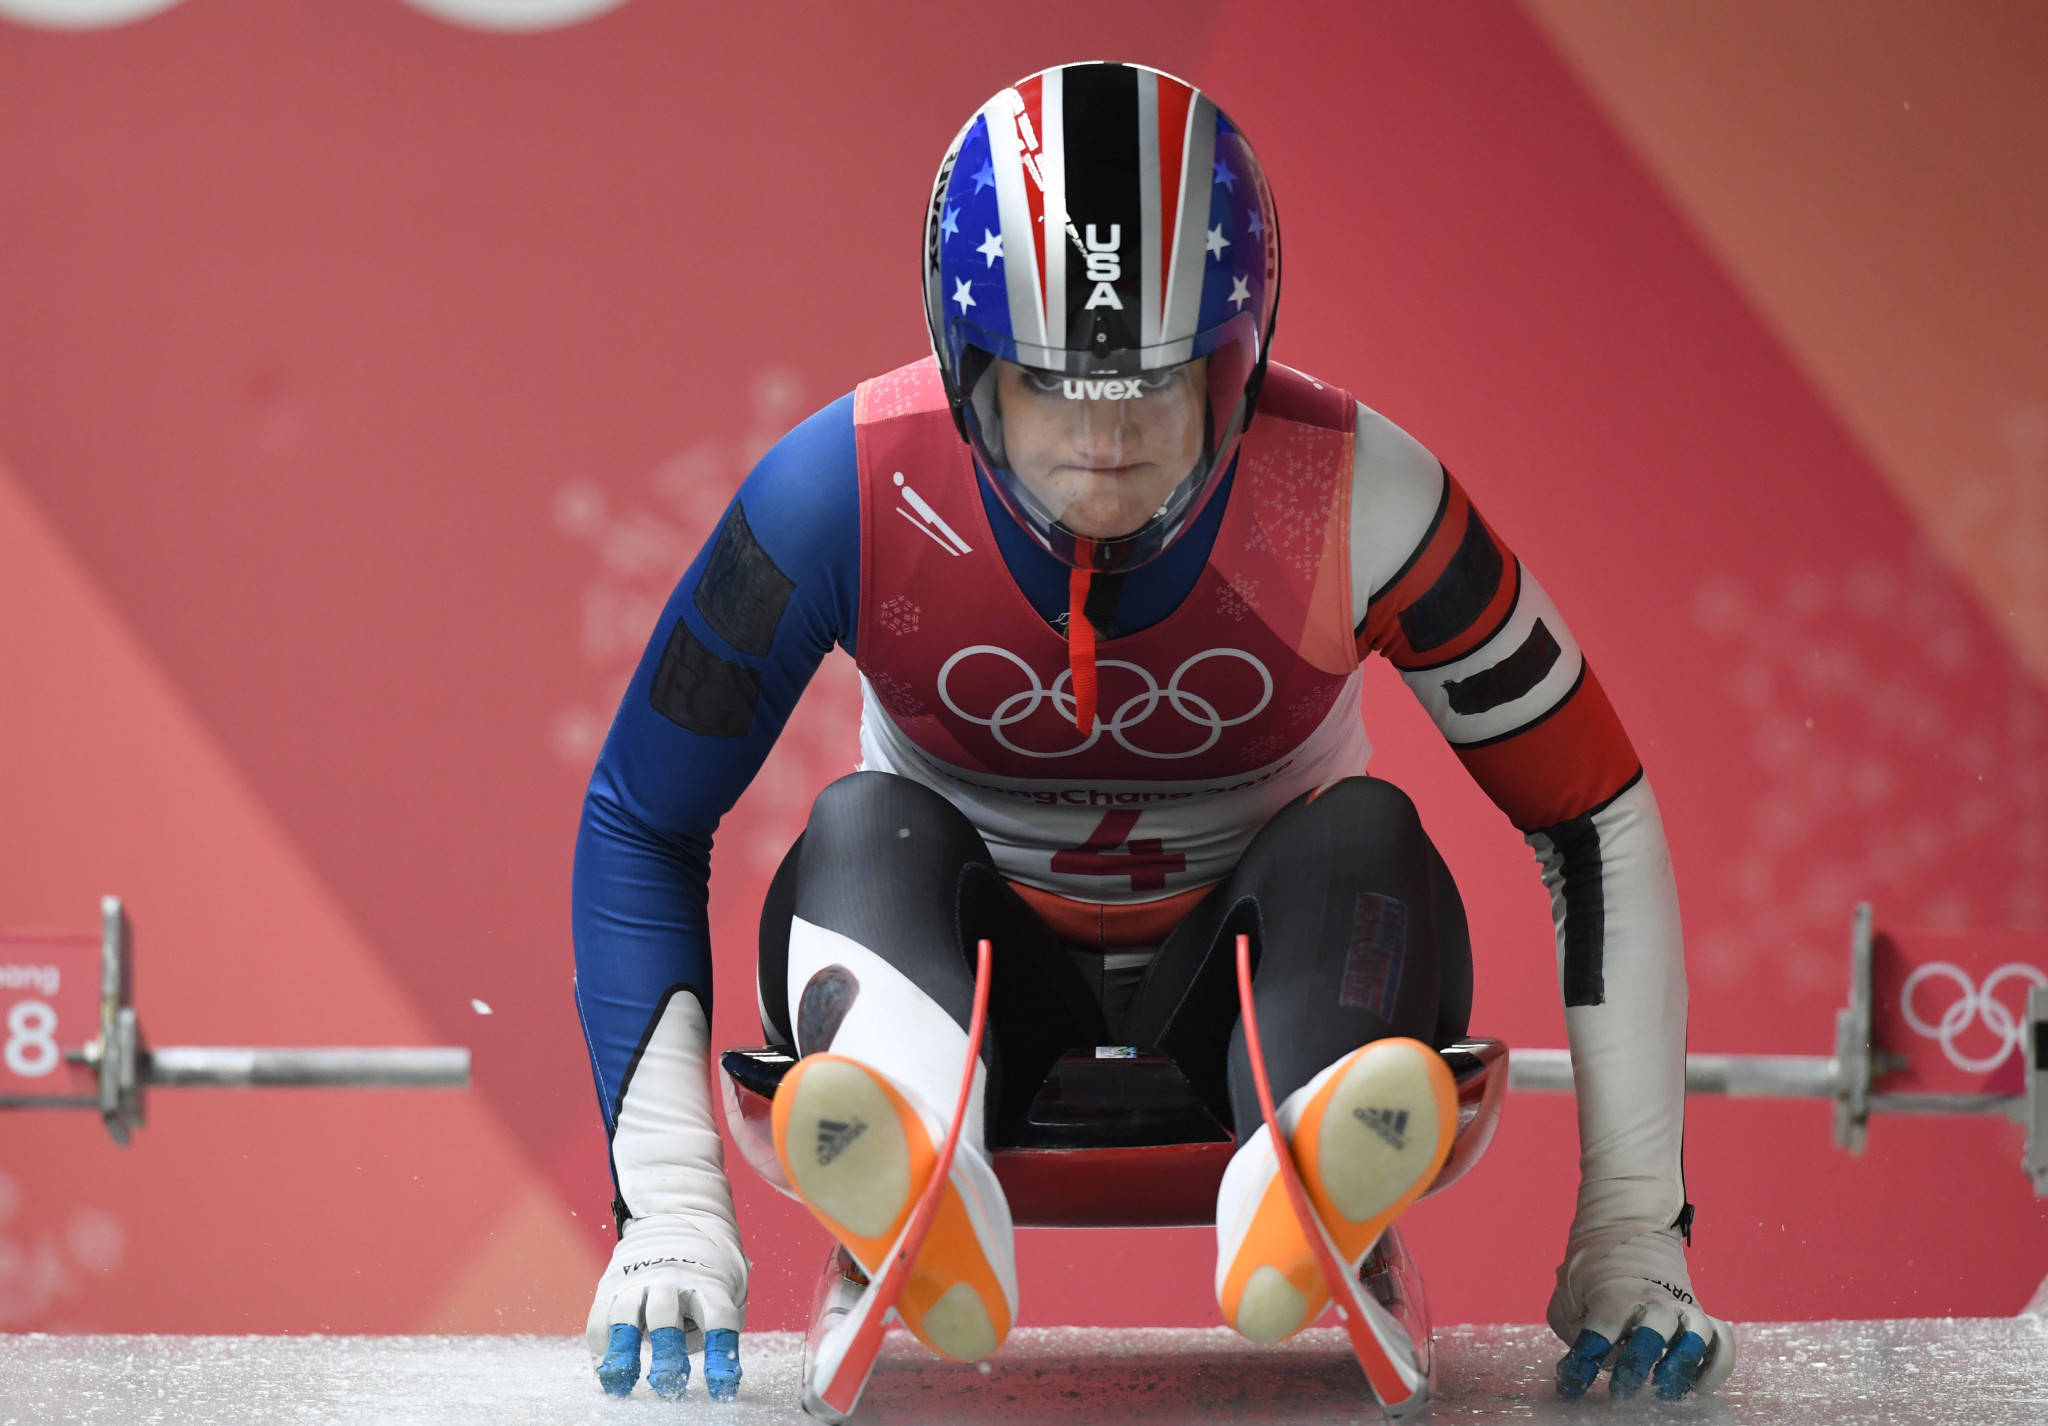 US Olympians dominate luge start event in Meransen